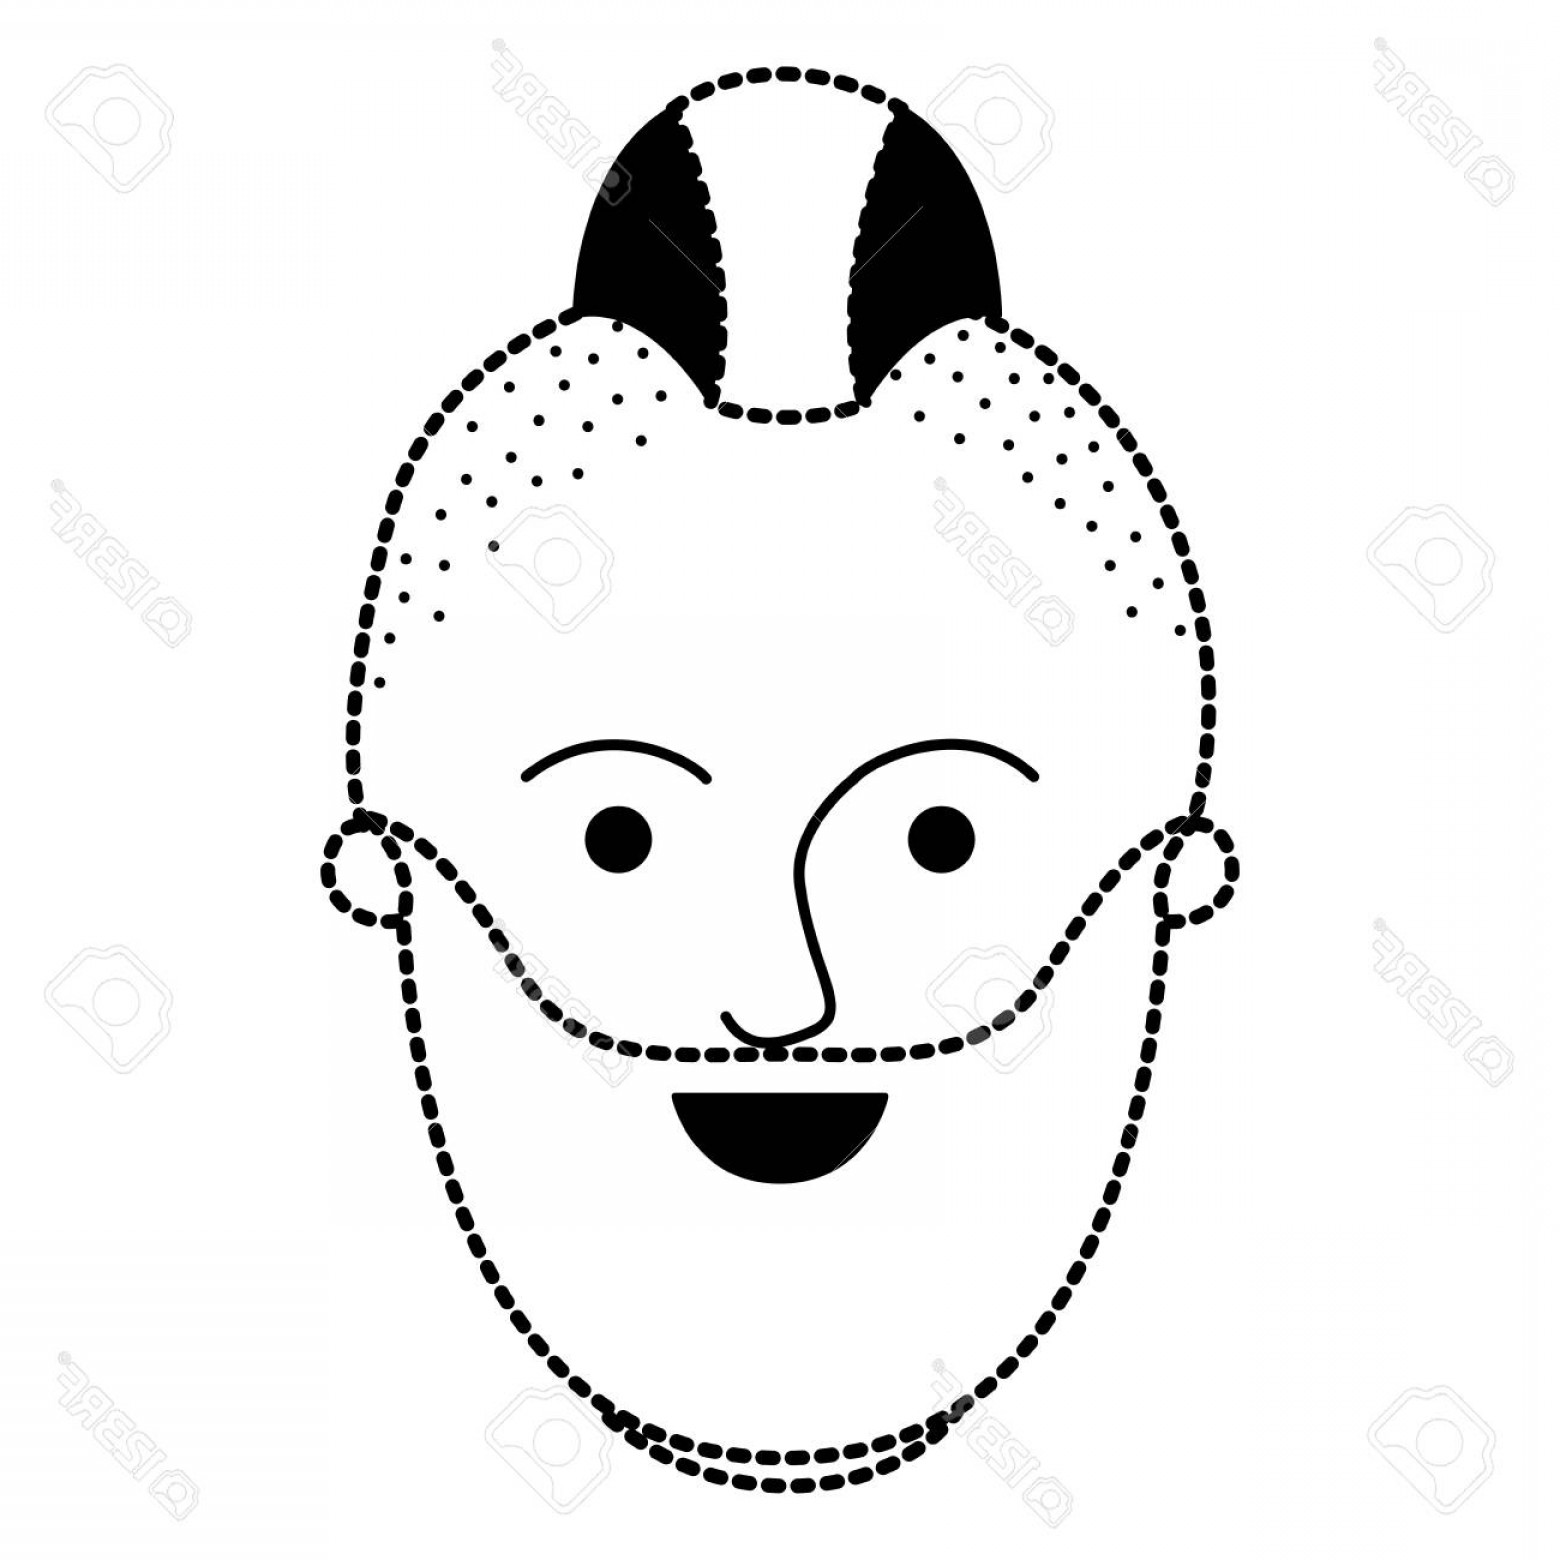 Vector Male Fade Hair: Photostock Vector Male Face With Taper Fade Haircut And Beard In Black Dotted Silhouette Vector Illustration